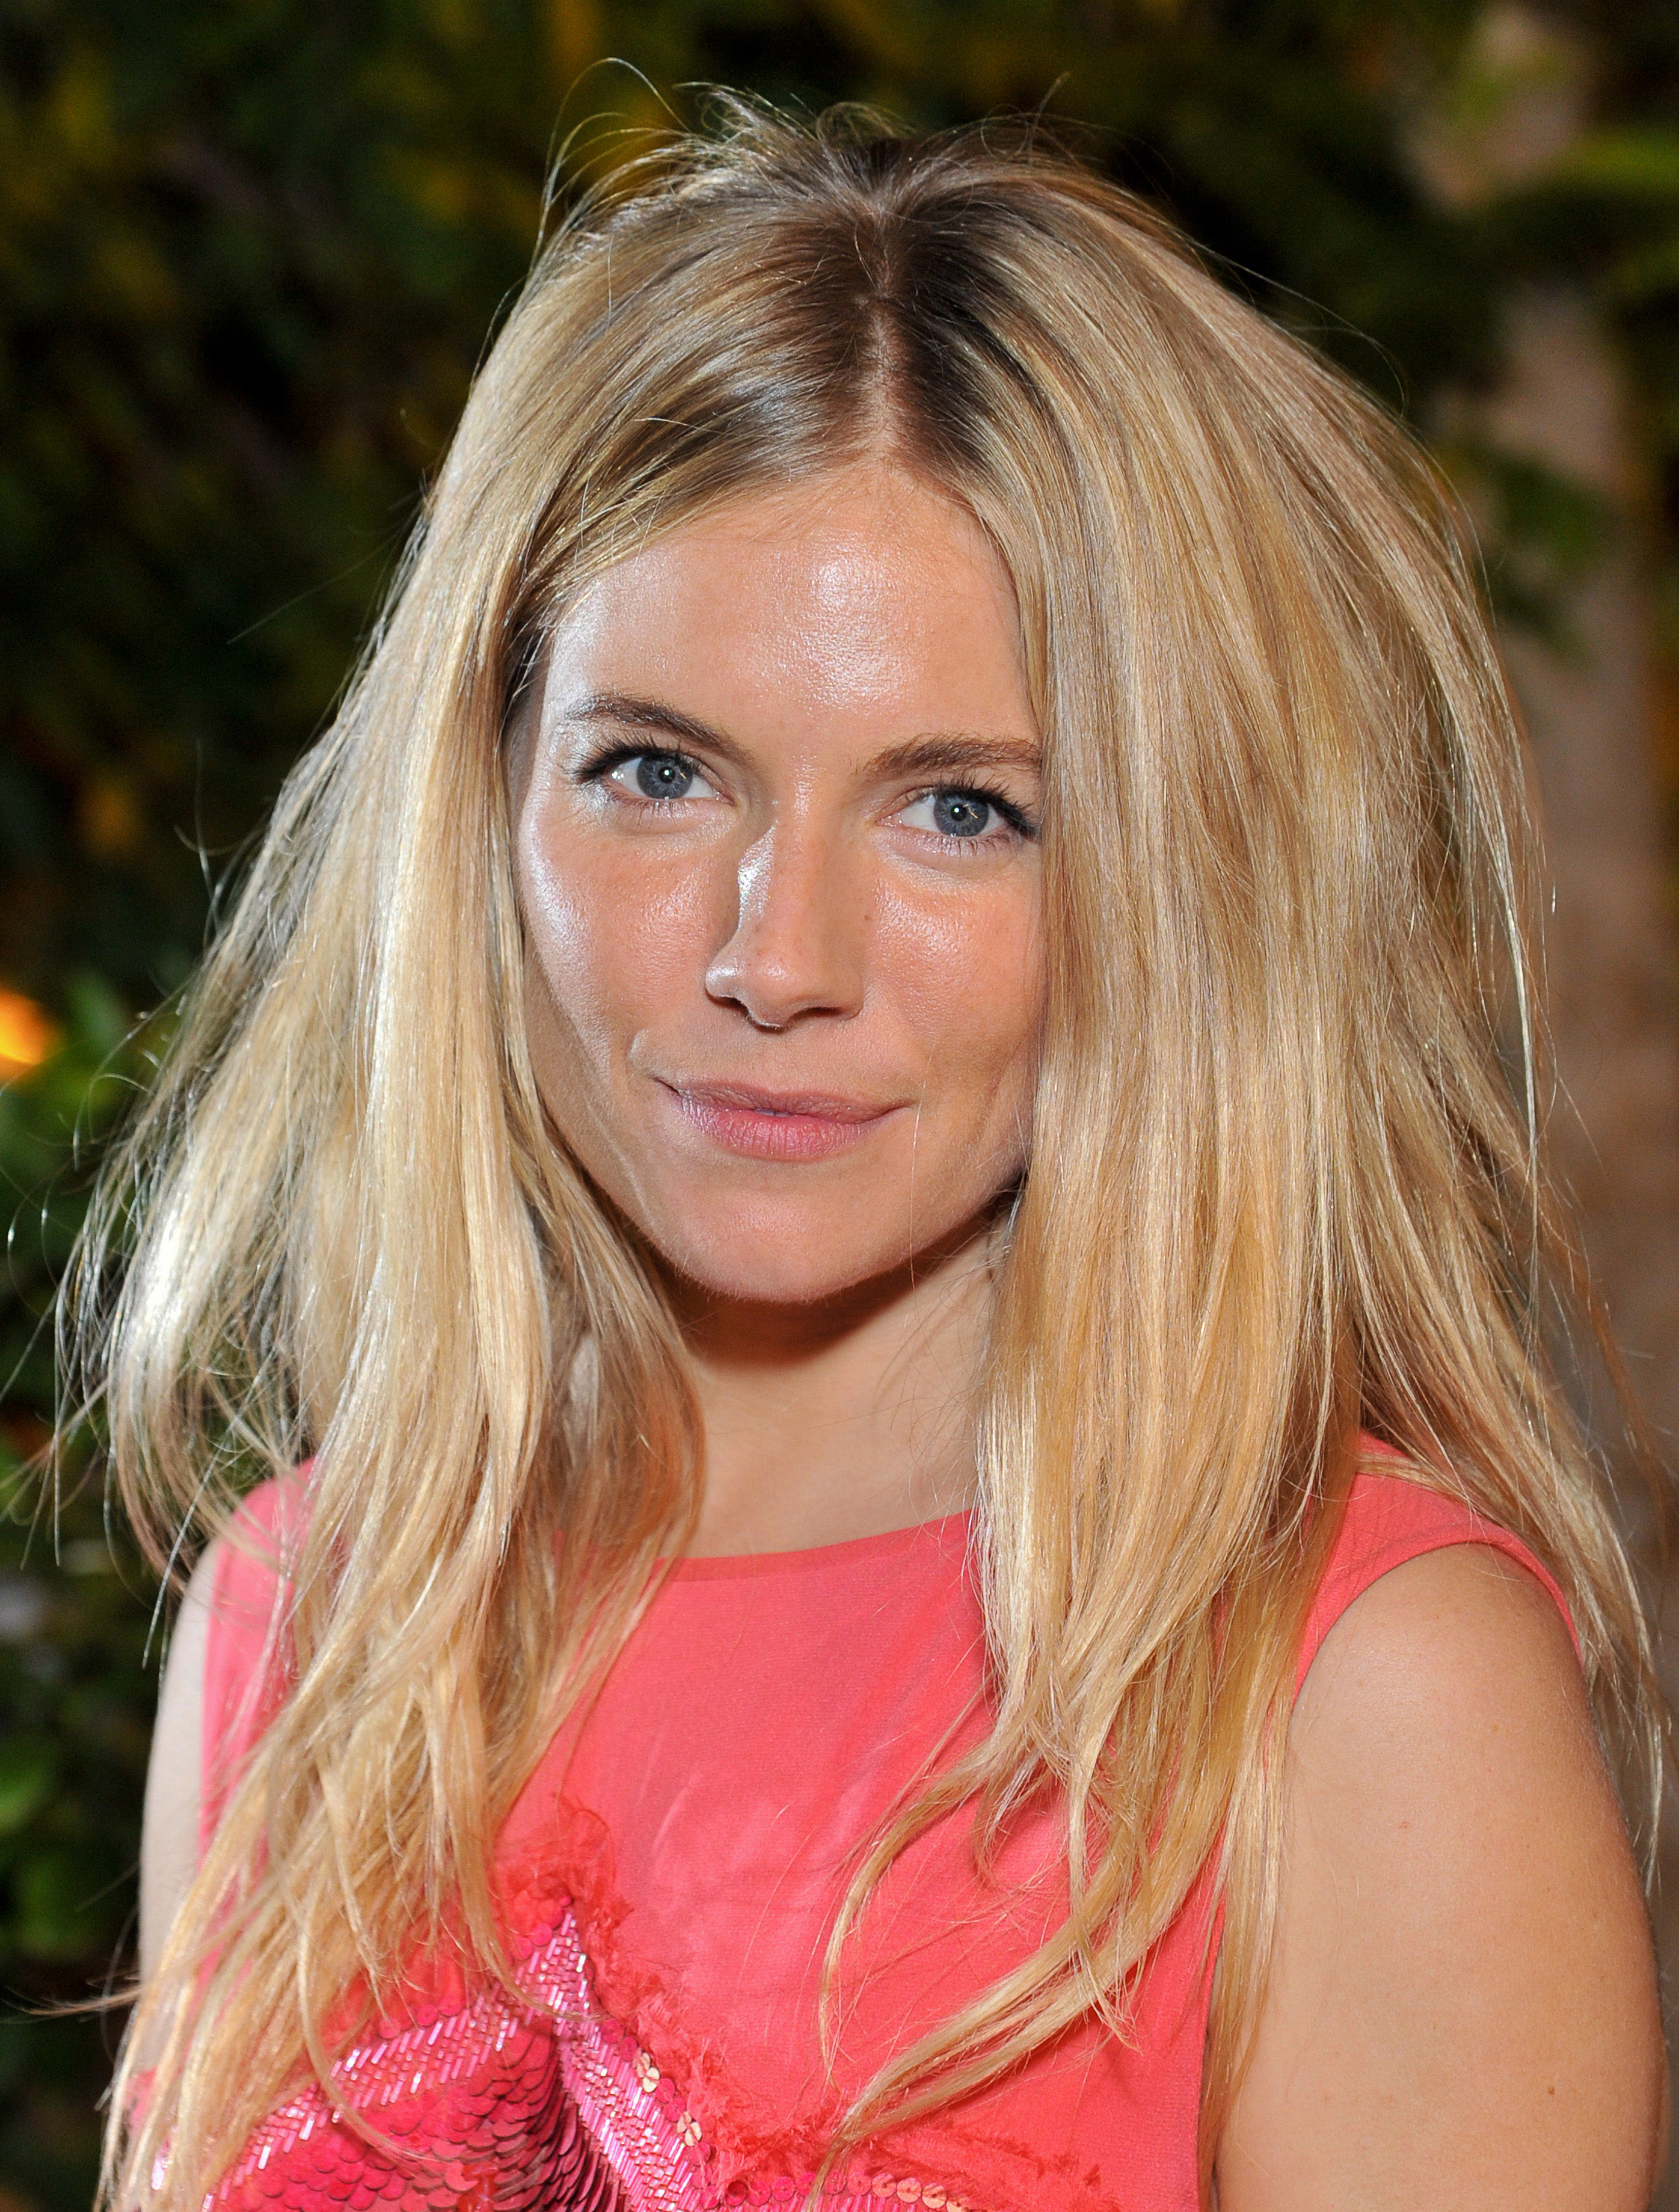 Sienna Miller at a charity event in England.